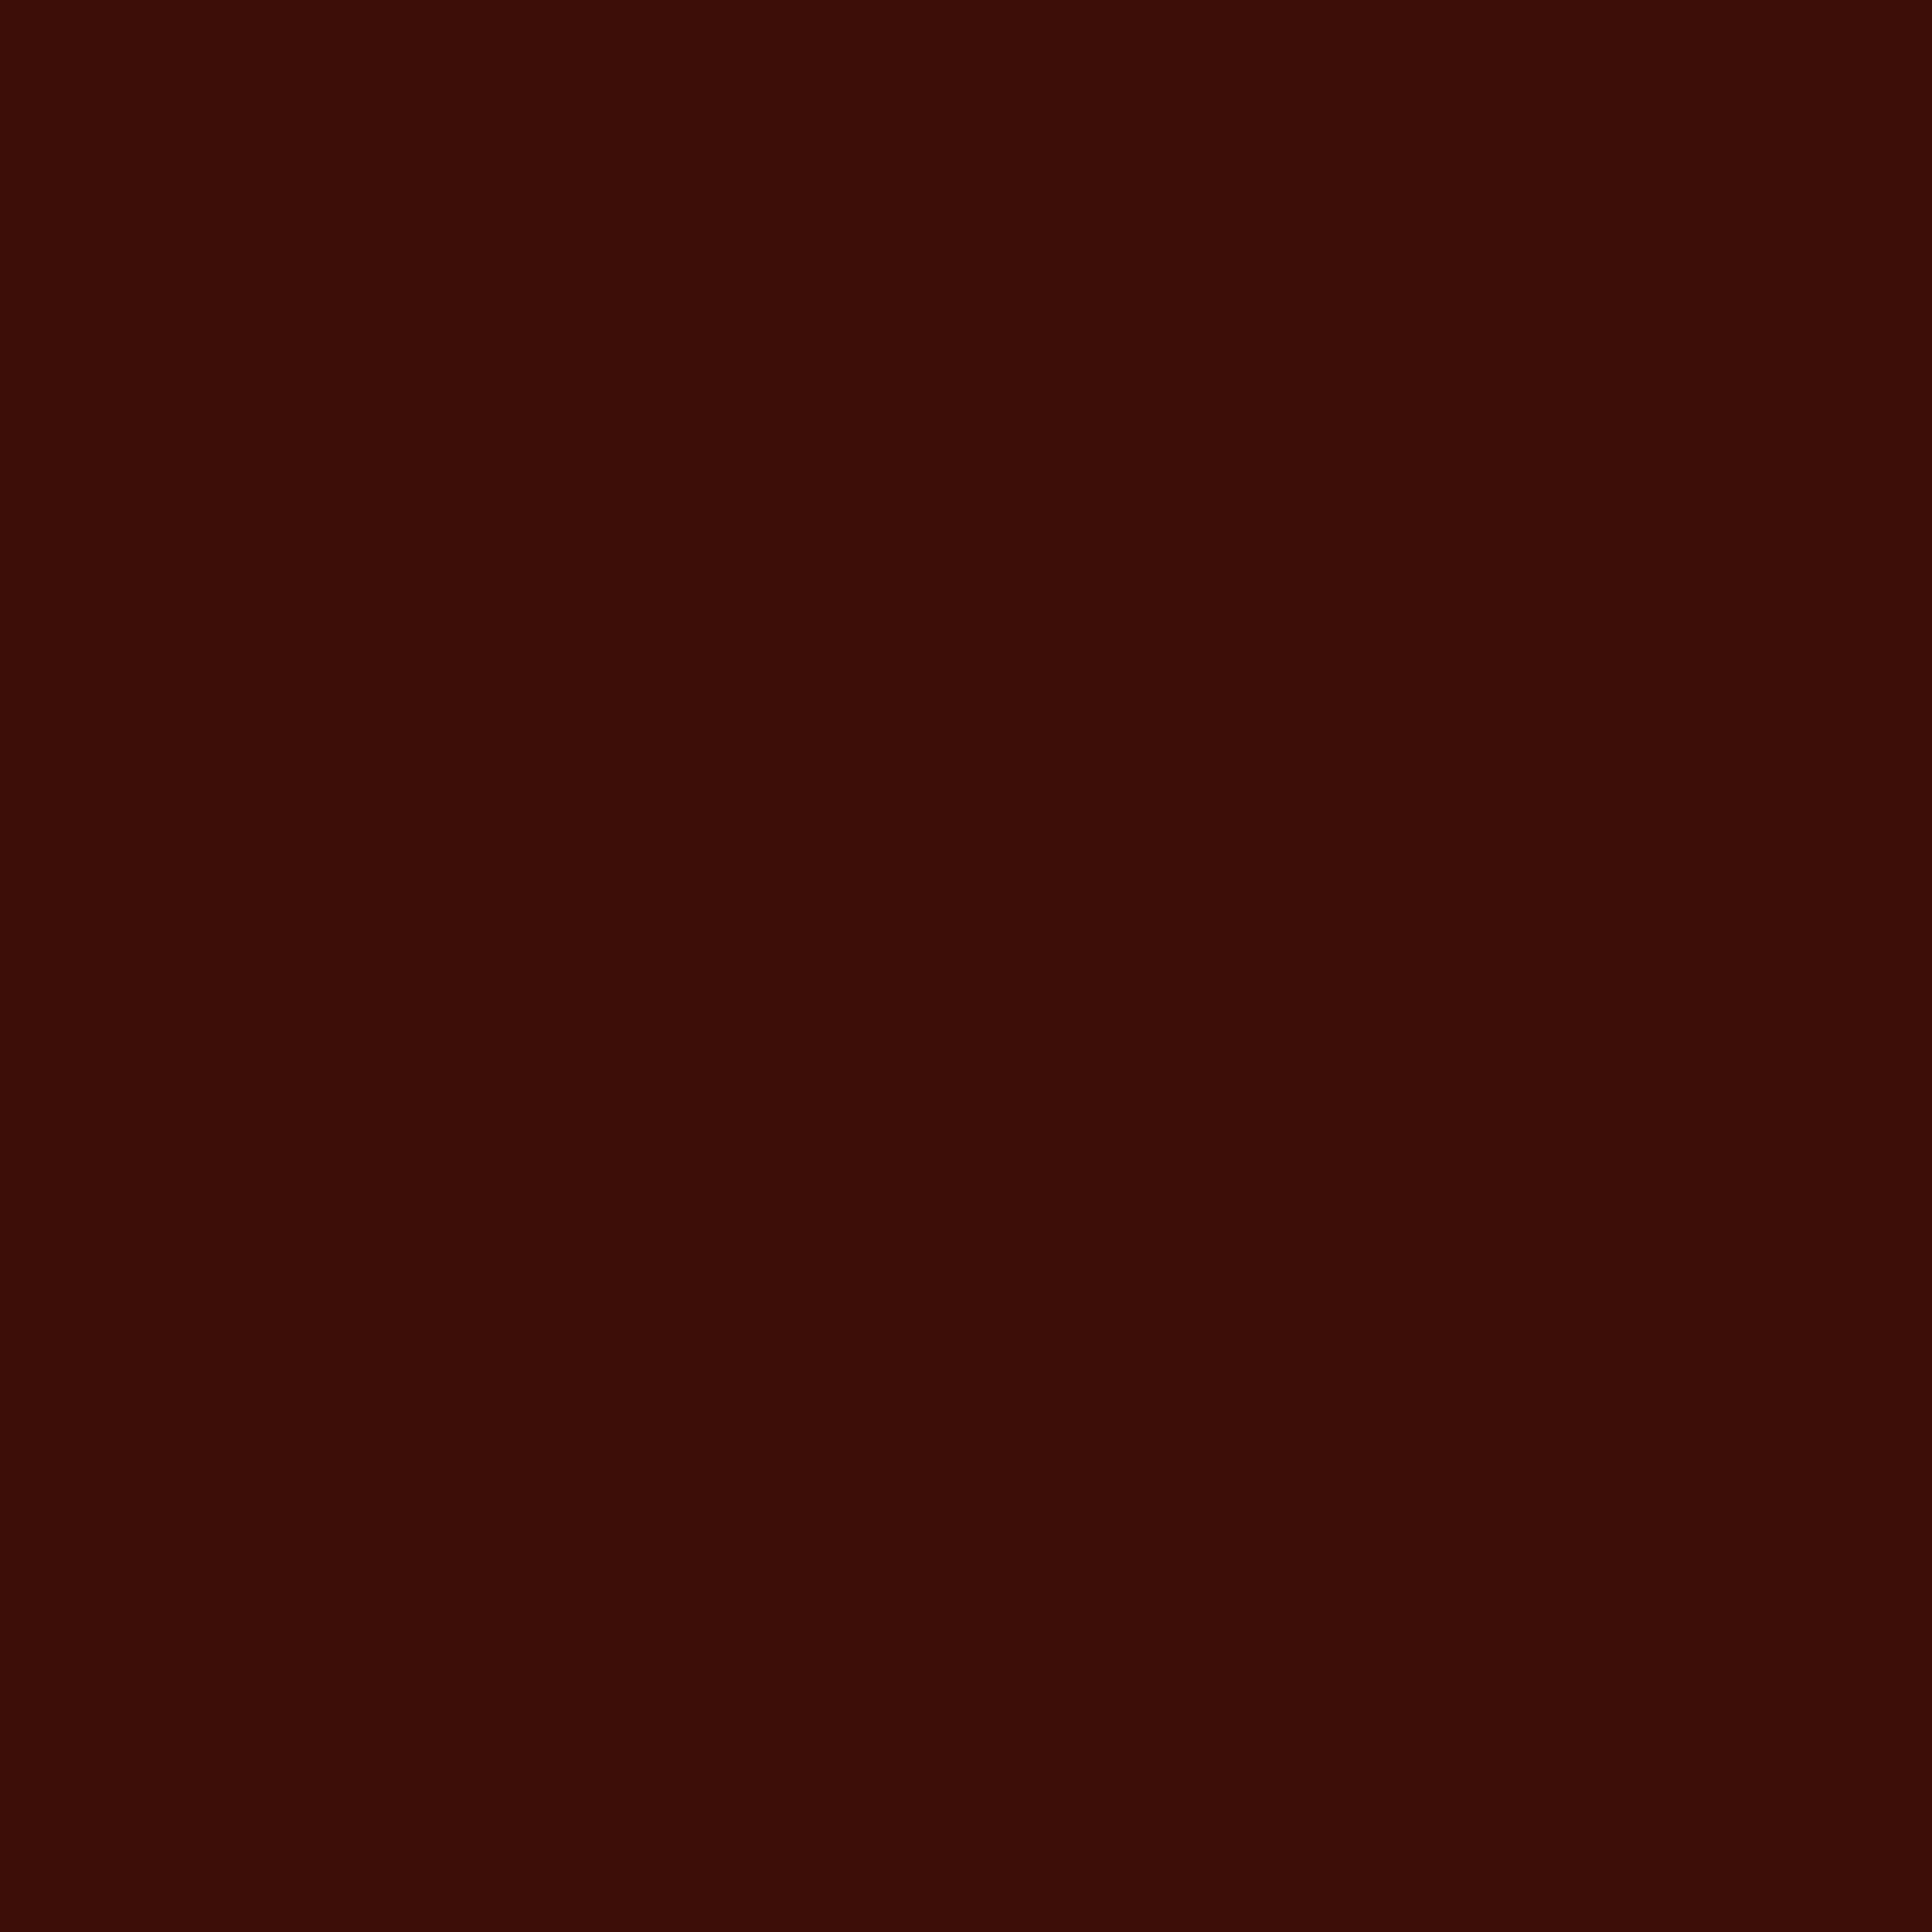 2048x2048 Black Bean Solid Color Background